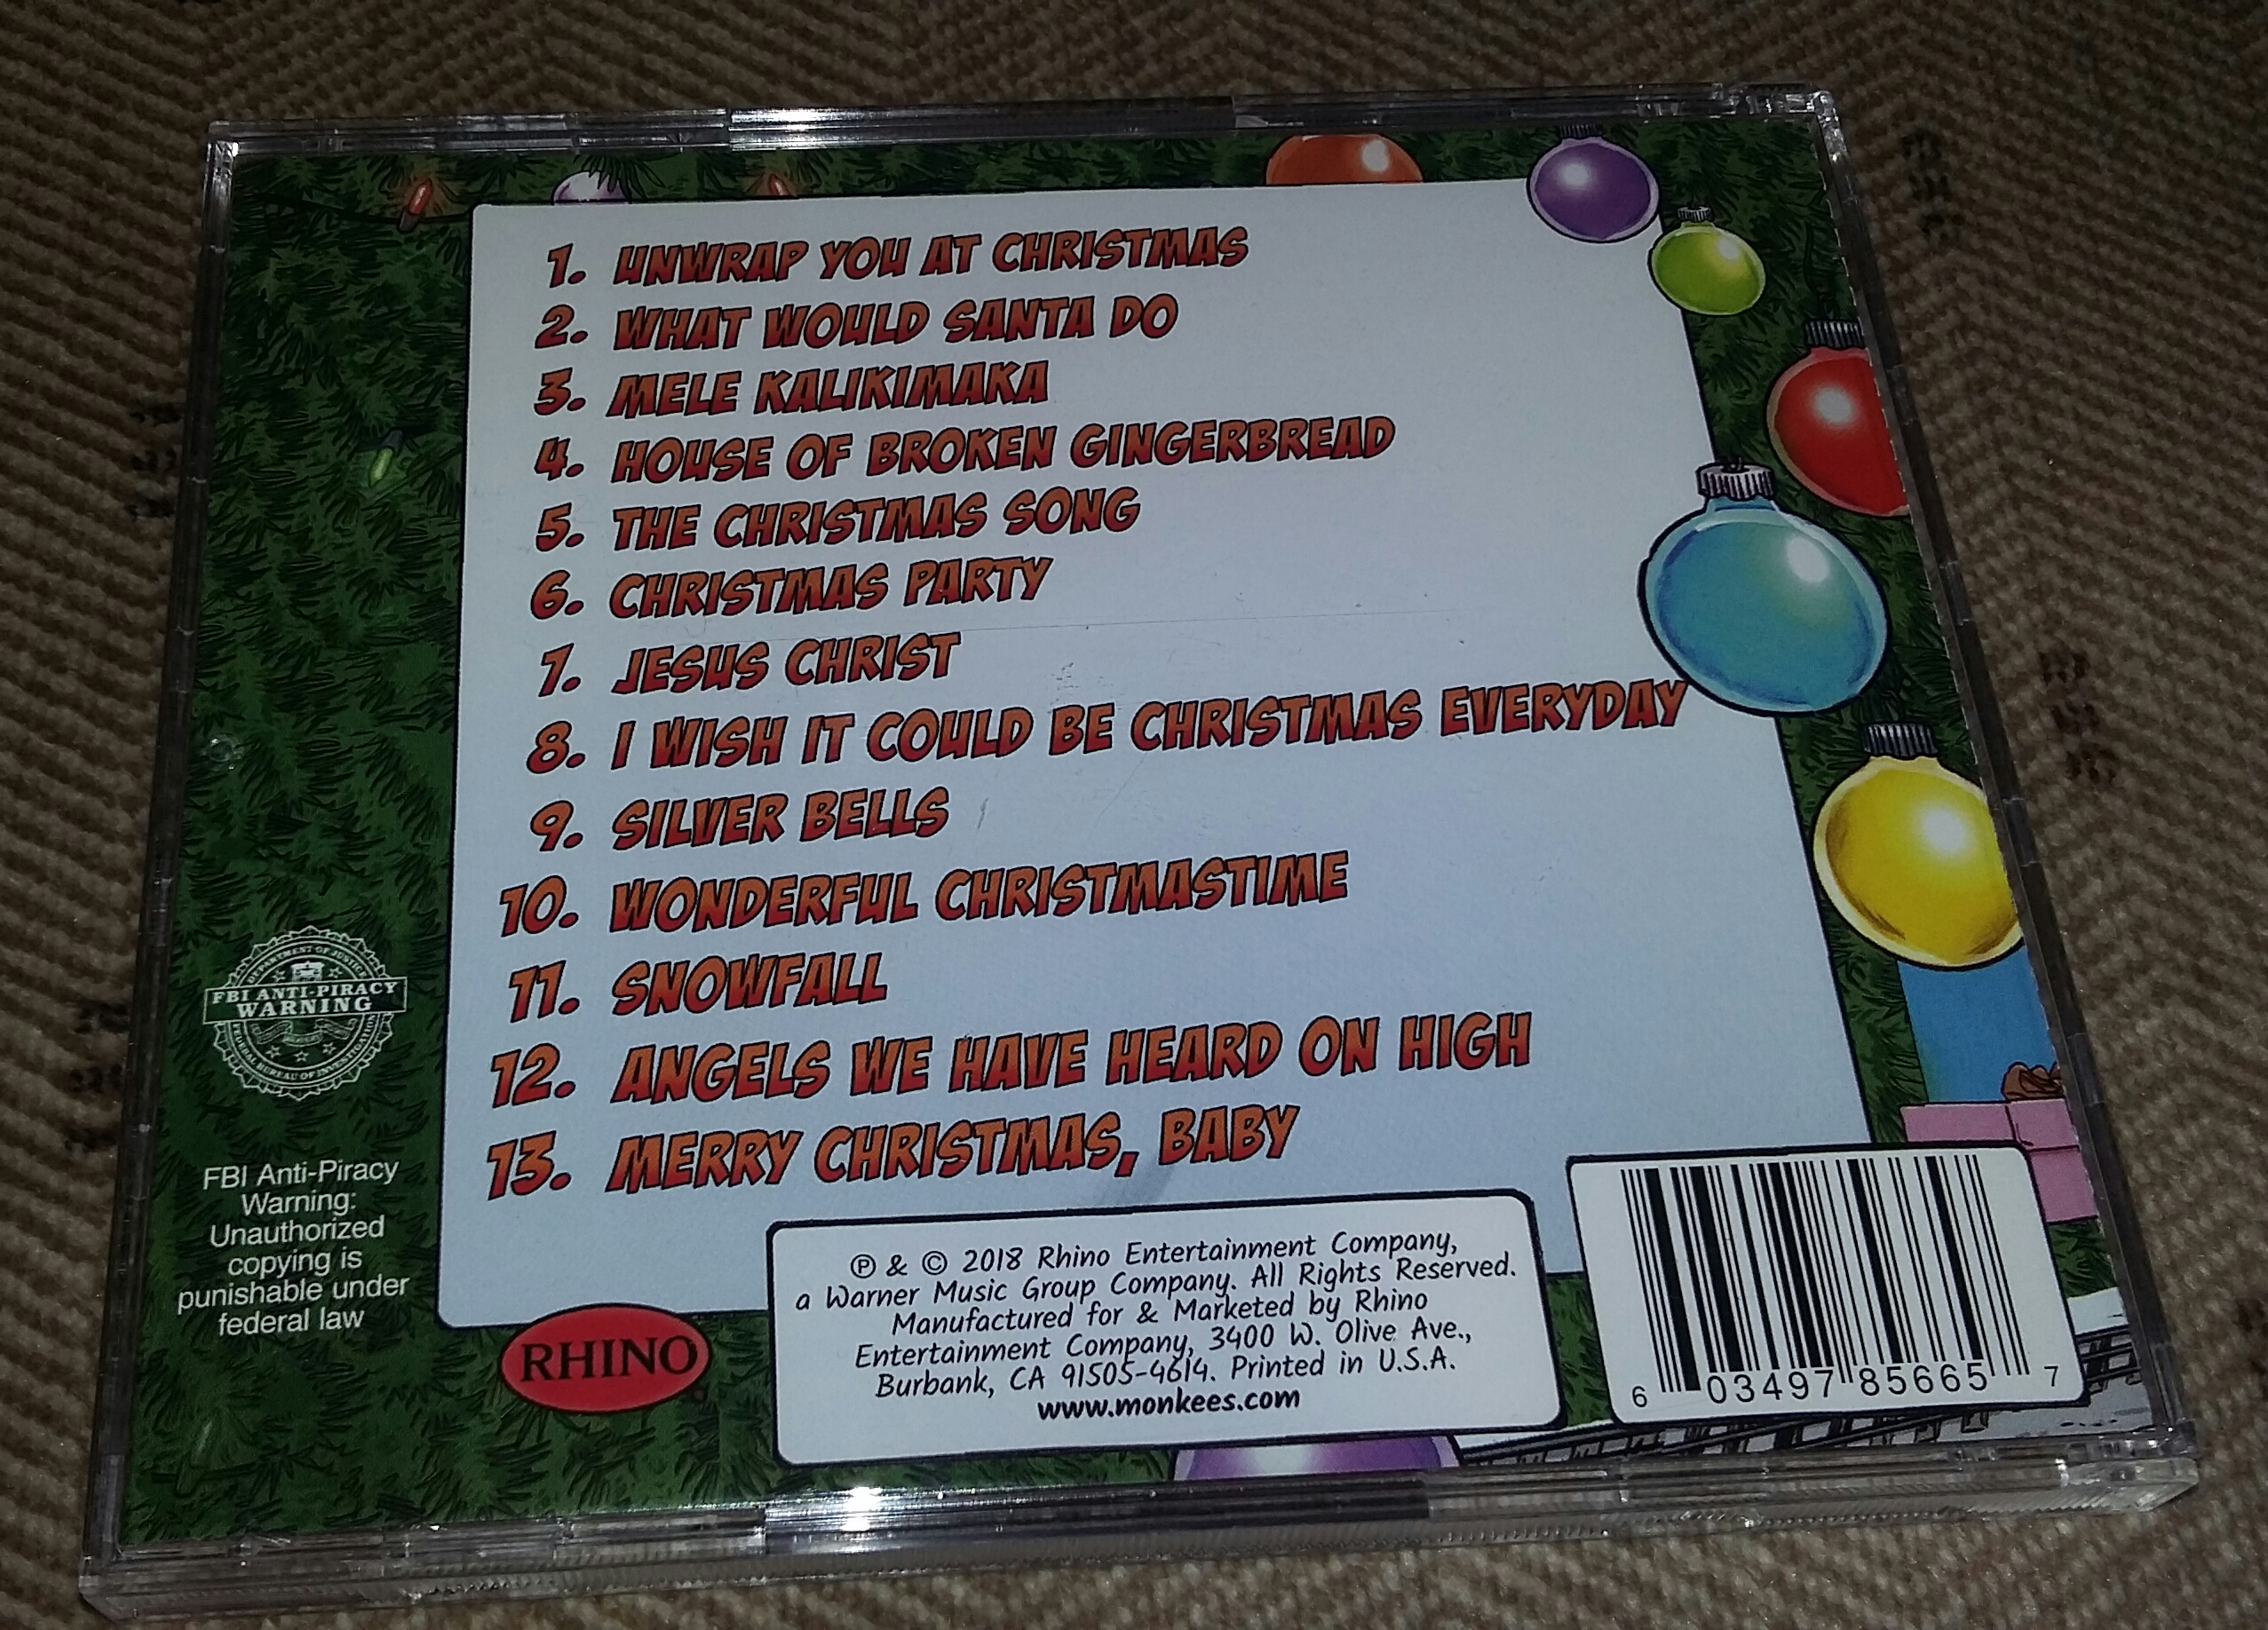 Monkees Christmas Party.Christmas In October The Monkees Christmas Party Album